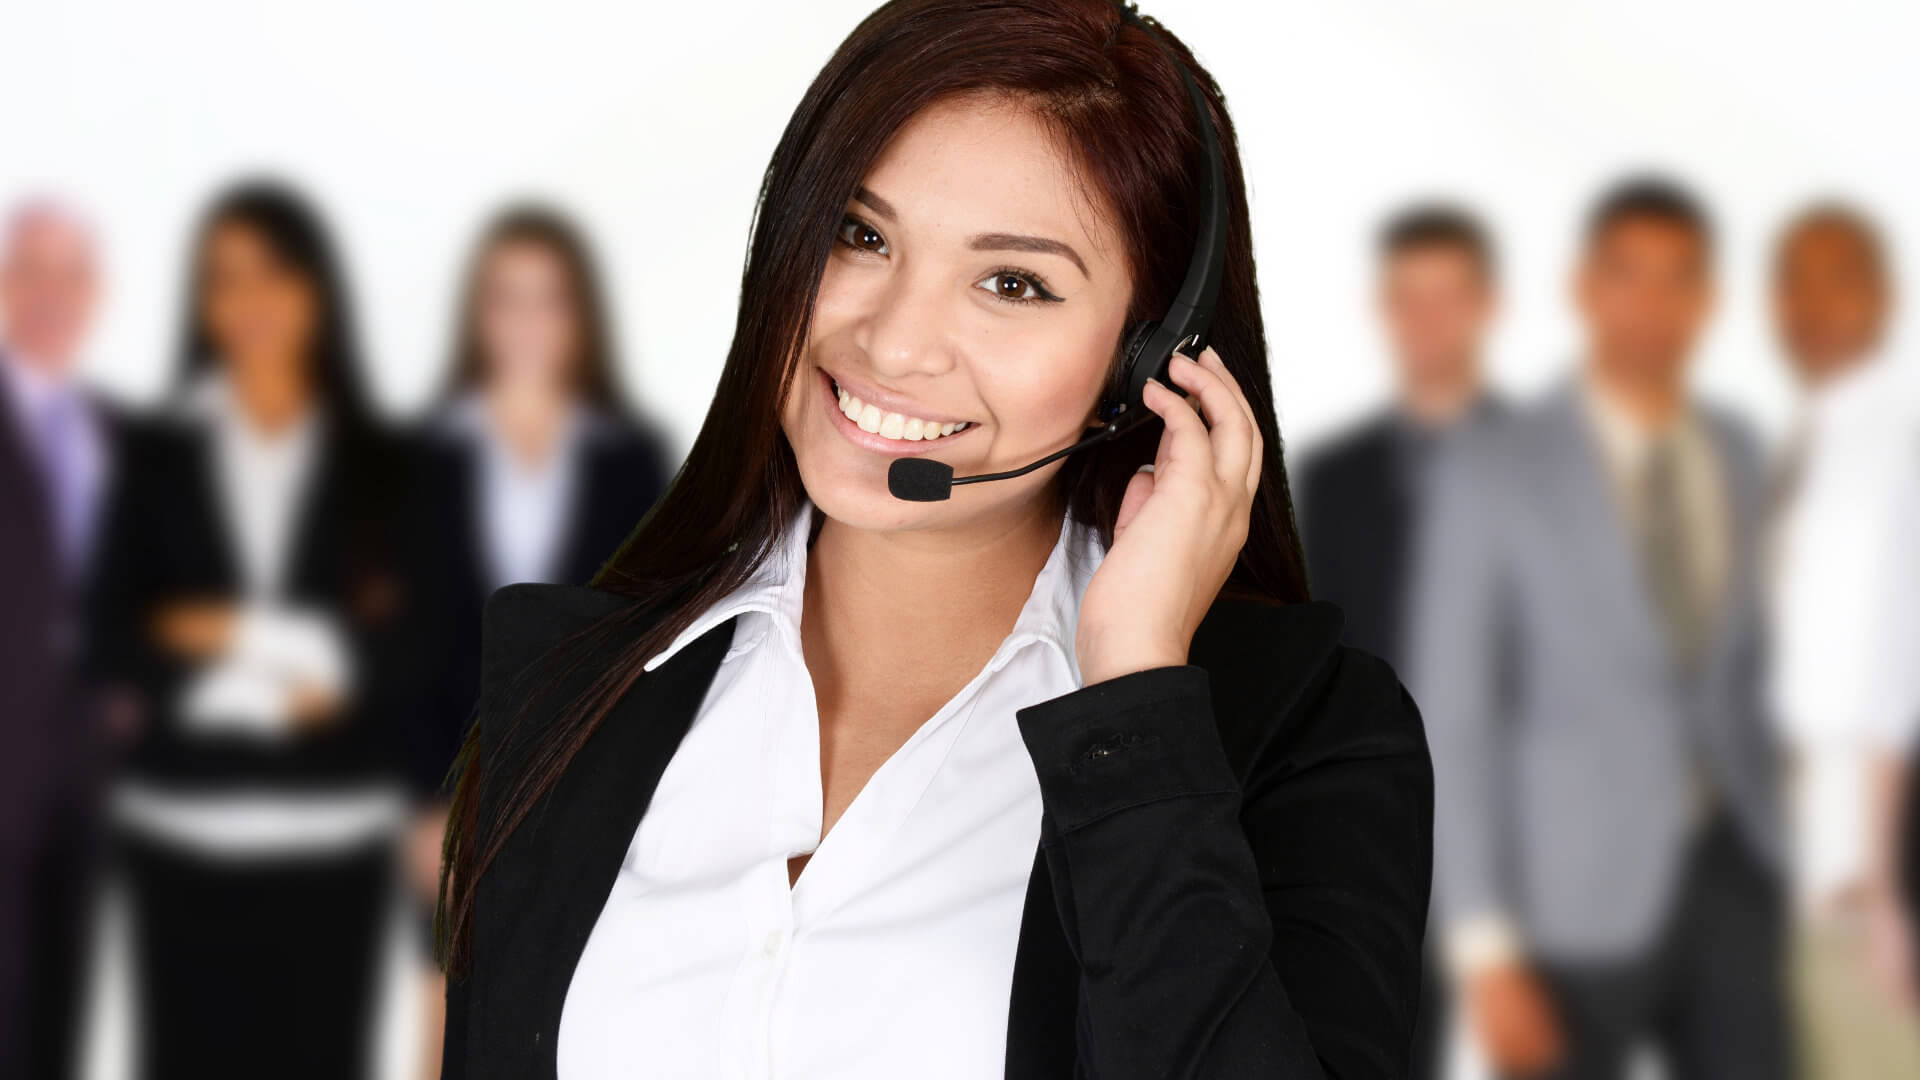 Contact Centre Managers Training course